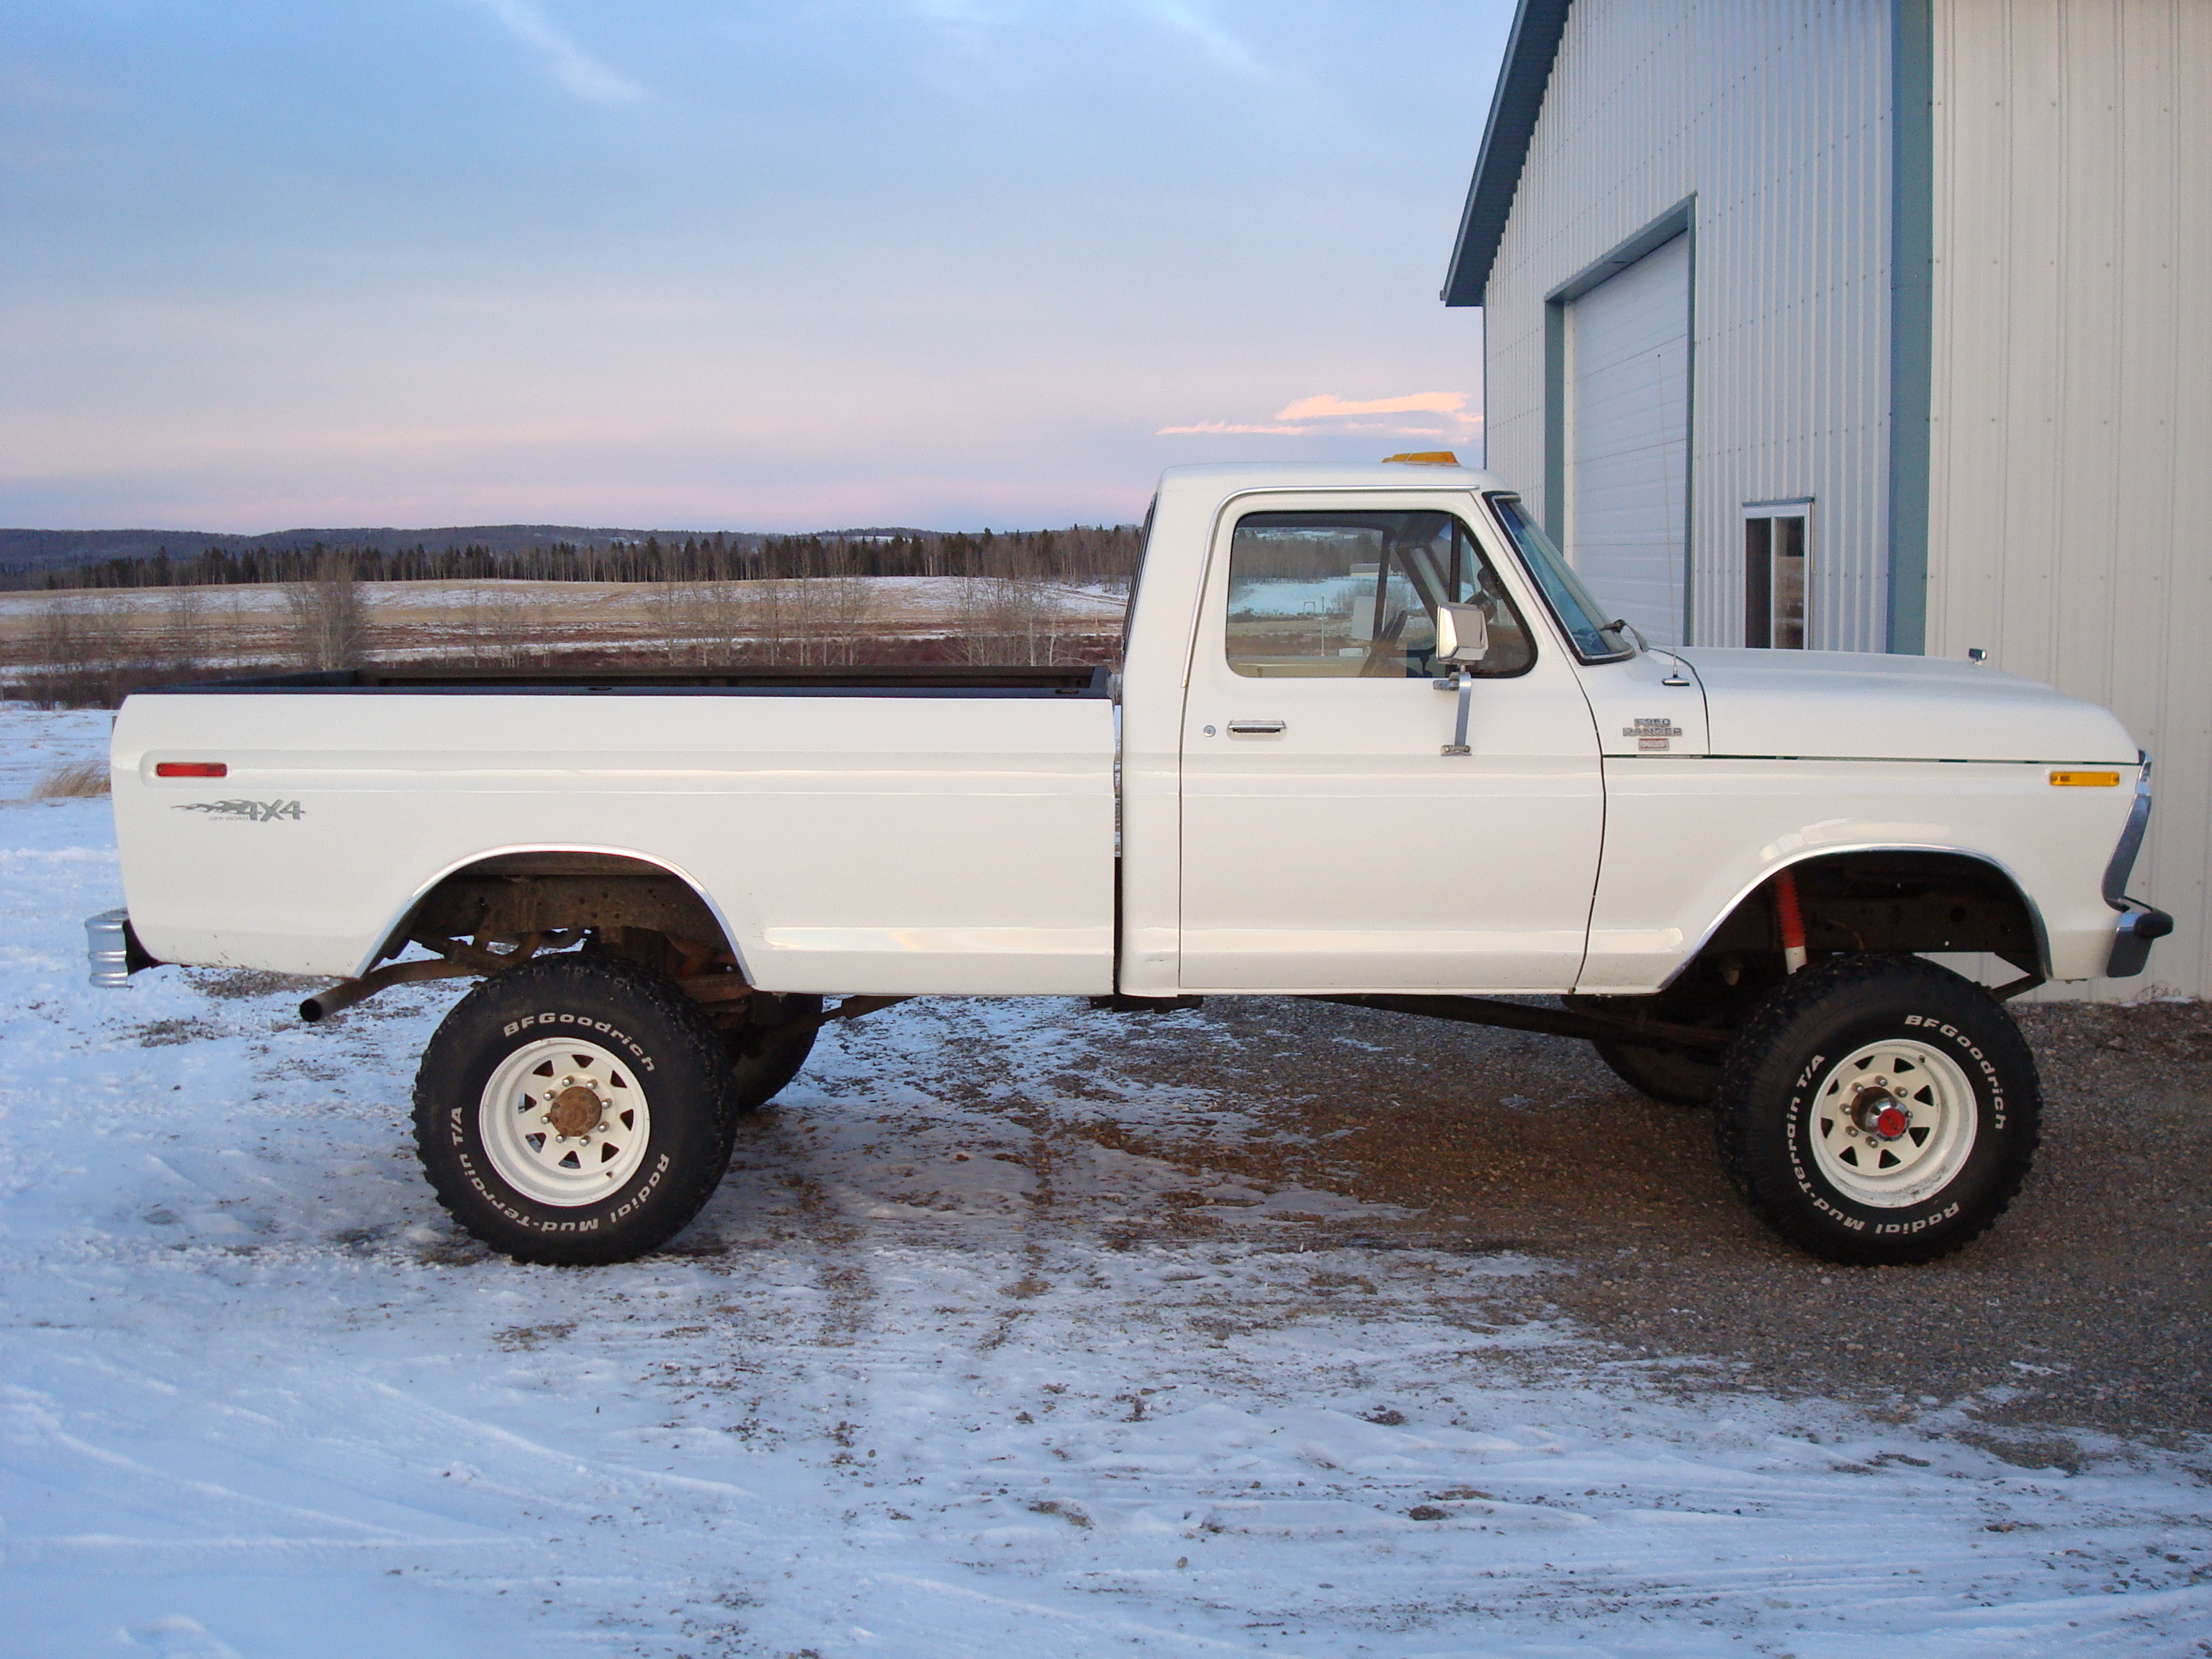 Brandon Mifsud 1976 Ford Ranger Regular Cab Specs, Photos, Modification Info at CarDomain